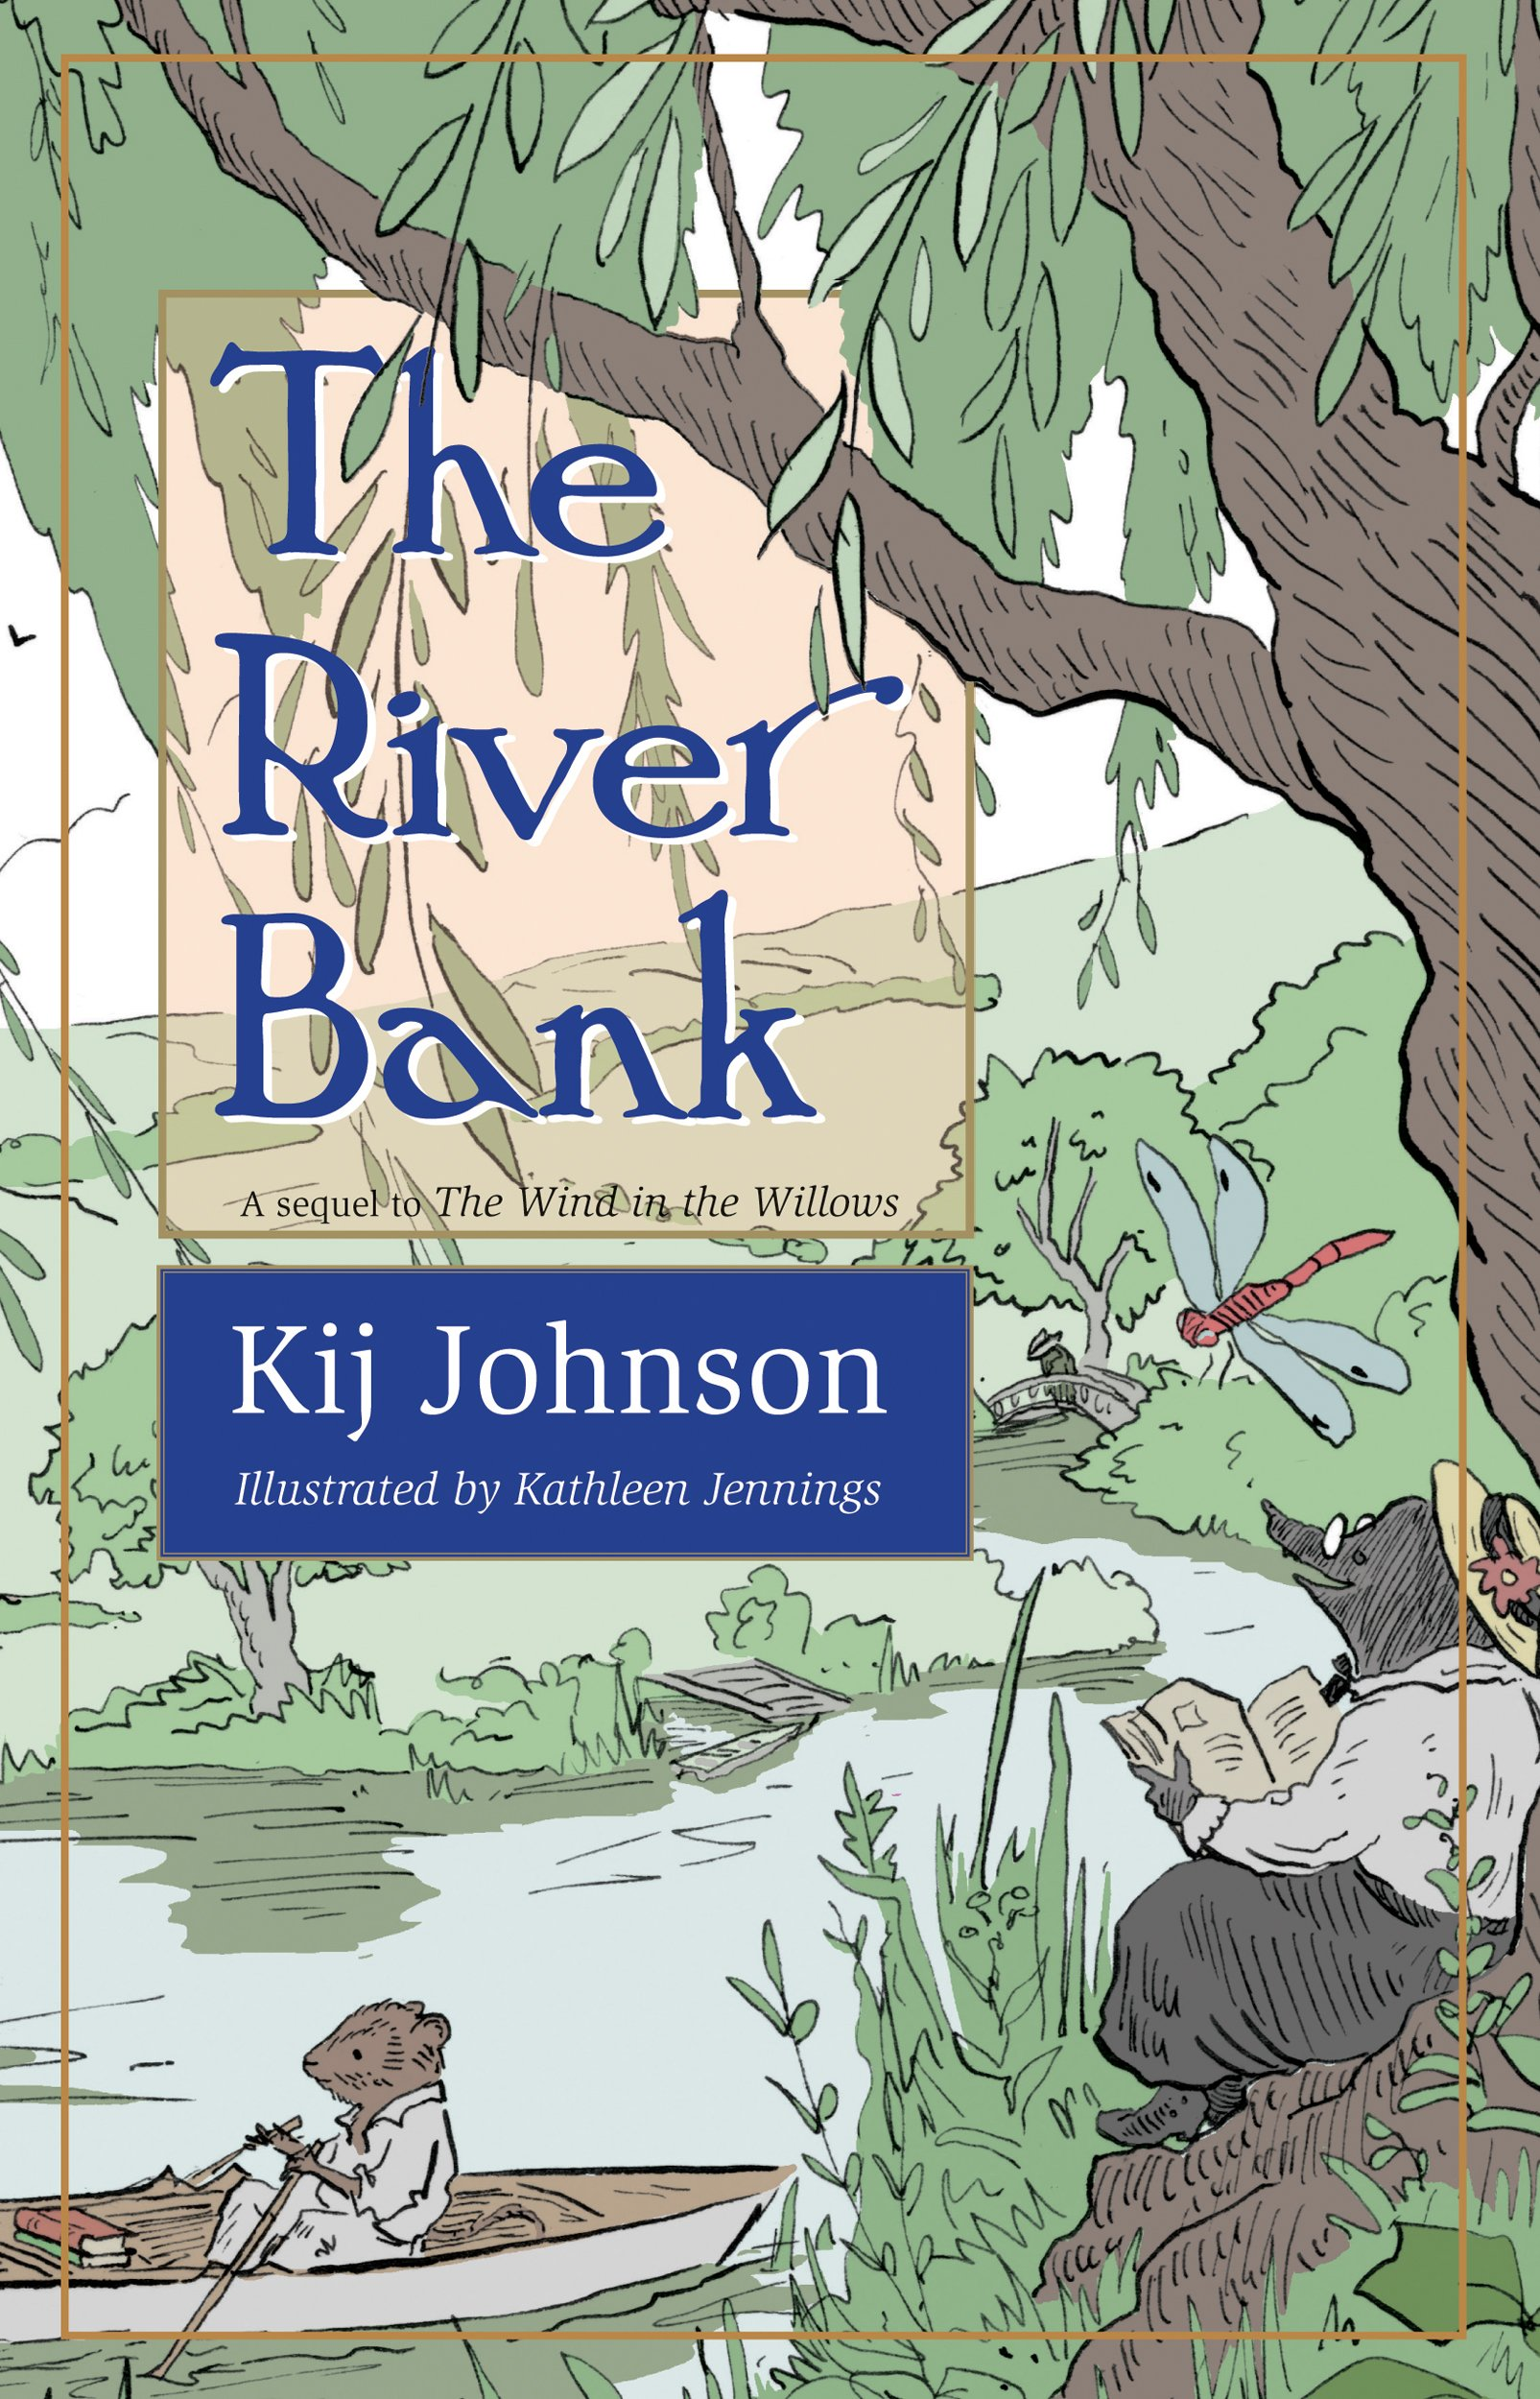 The River Bank: A sequel to Kenneth Grahame's The Wind in